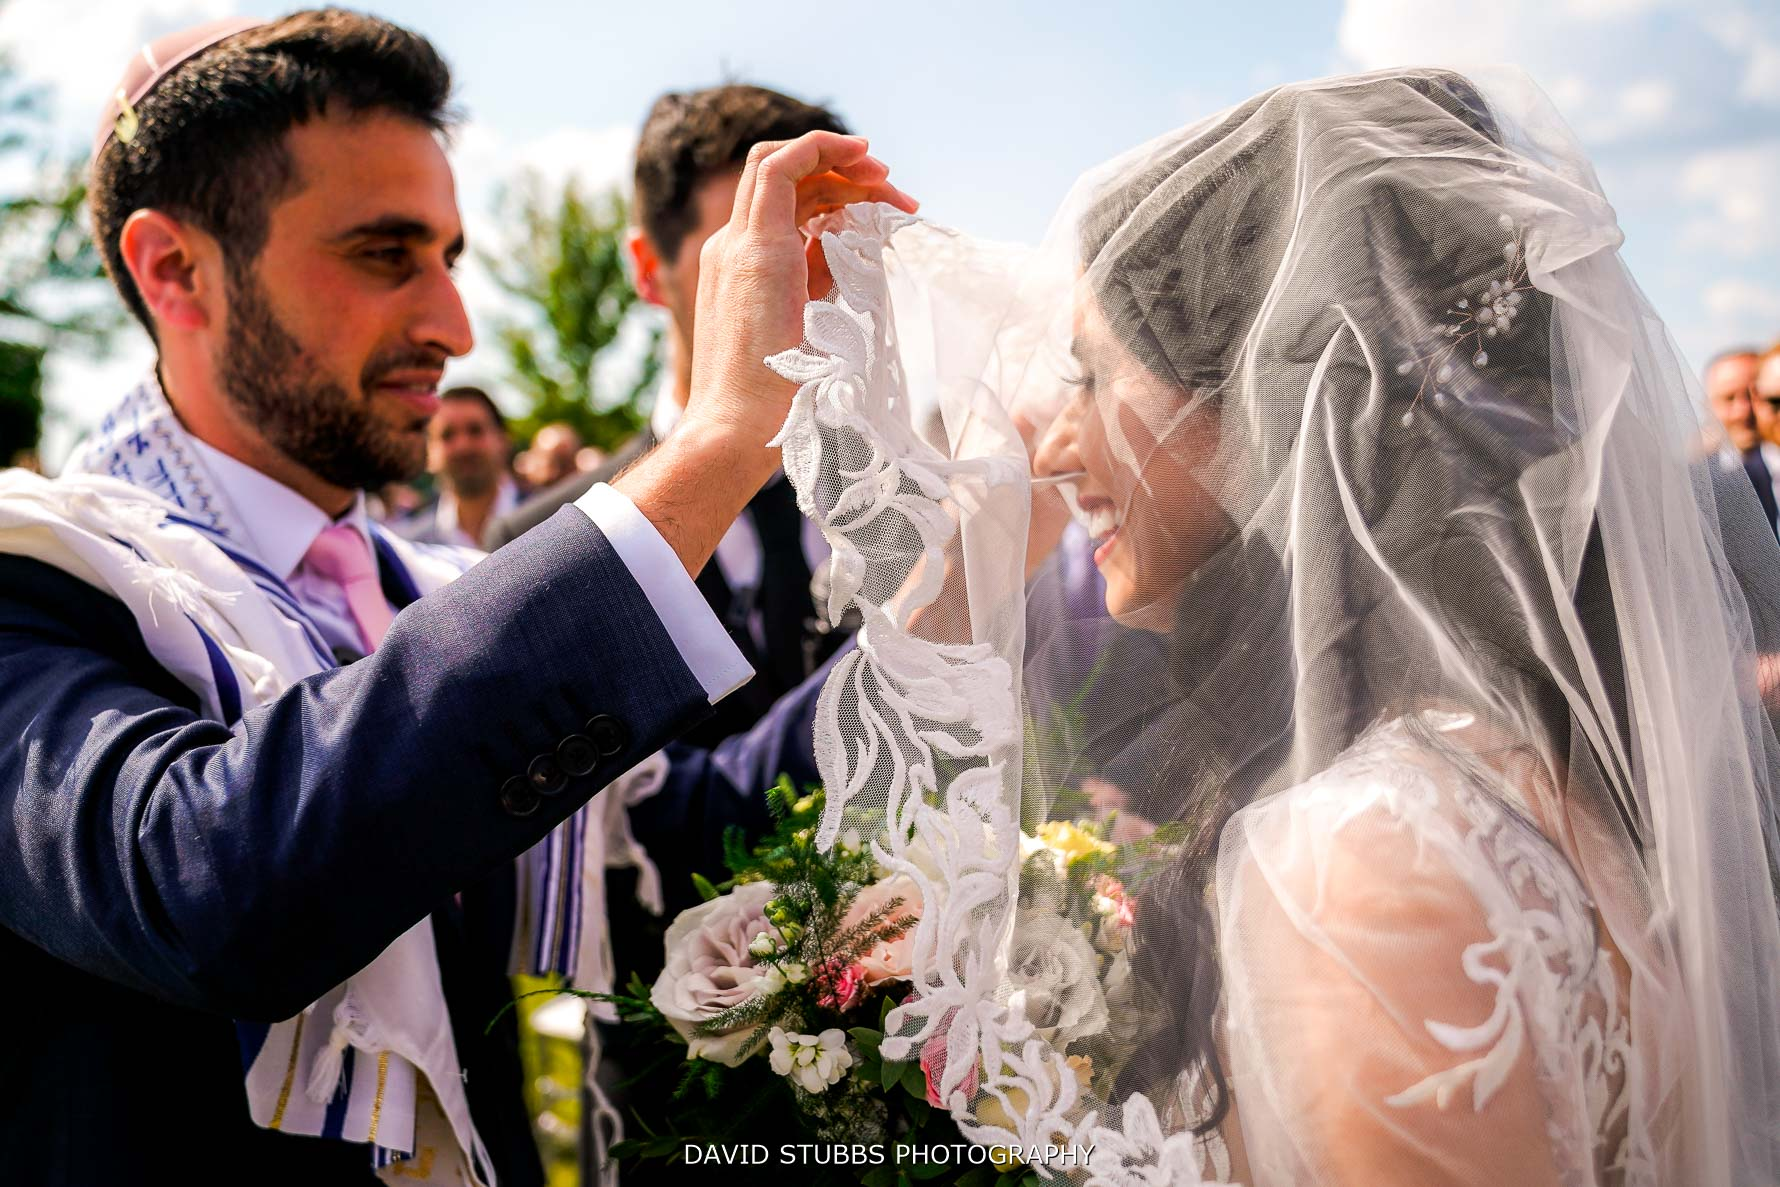 veil being lifted up by the groom